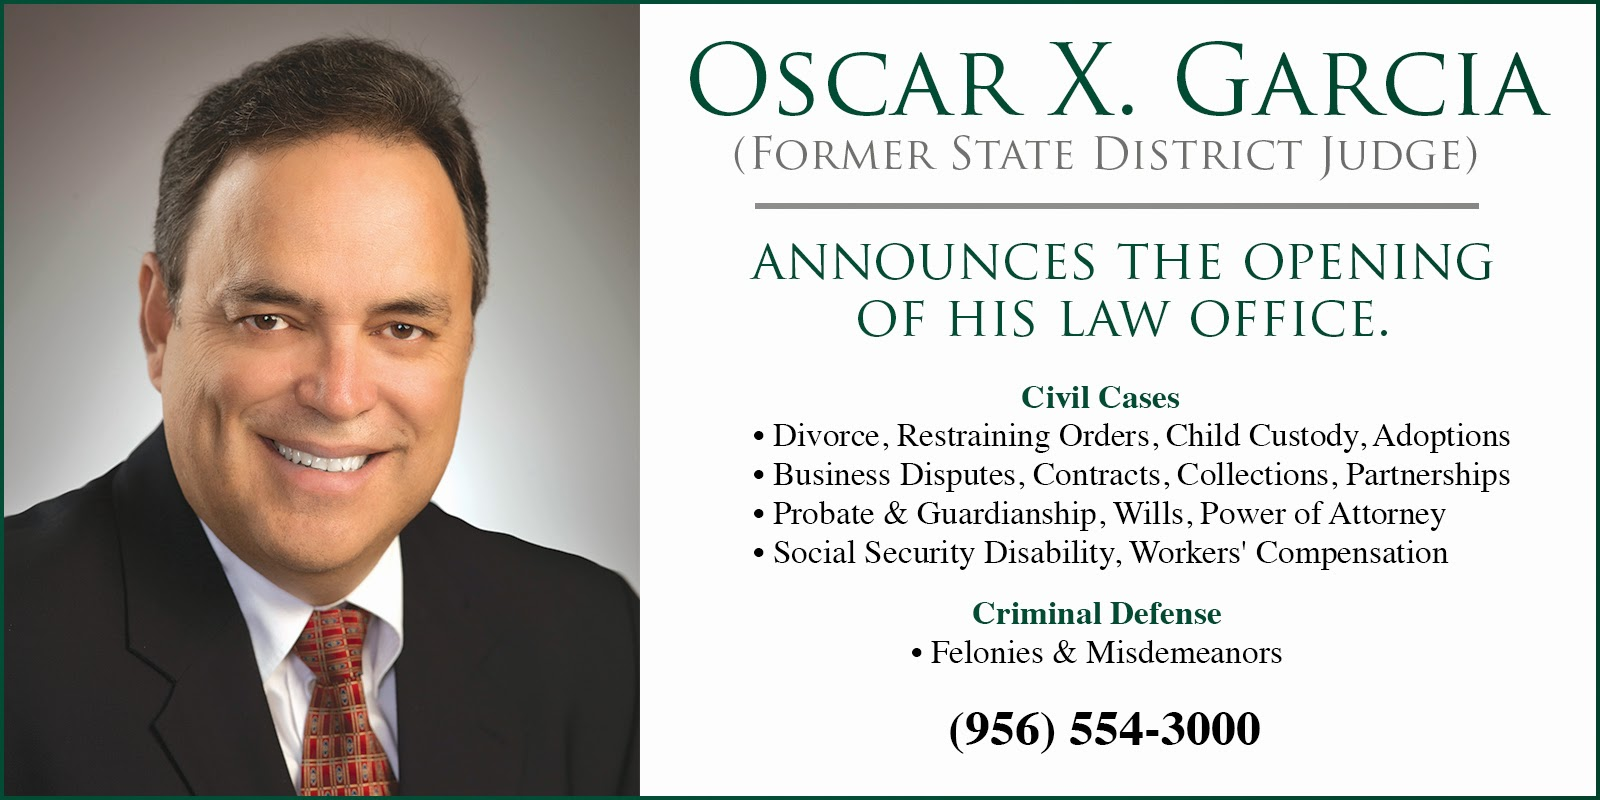 OSCAR X. GARCIA LAW FIRM